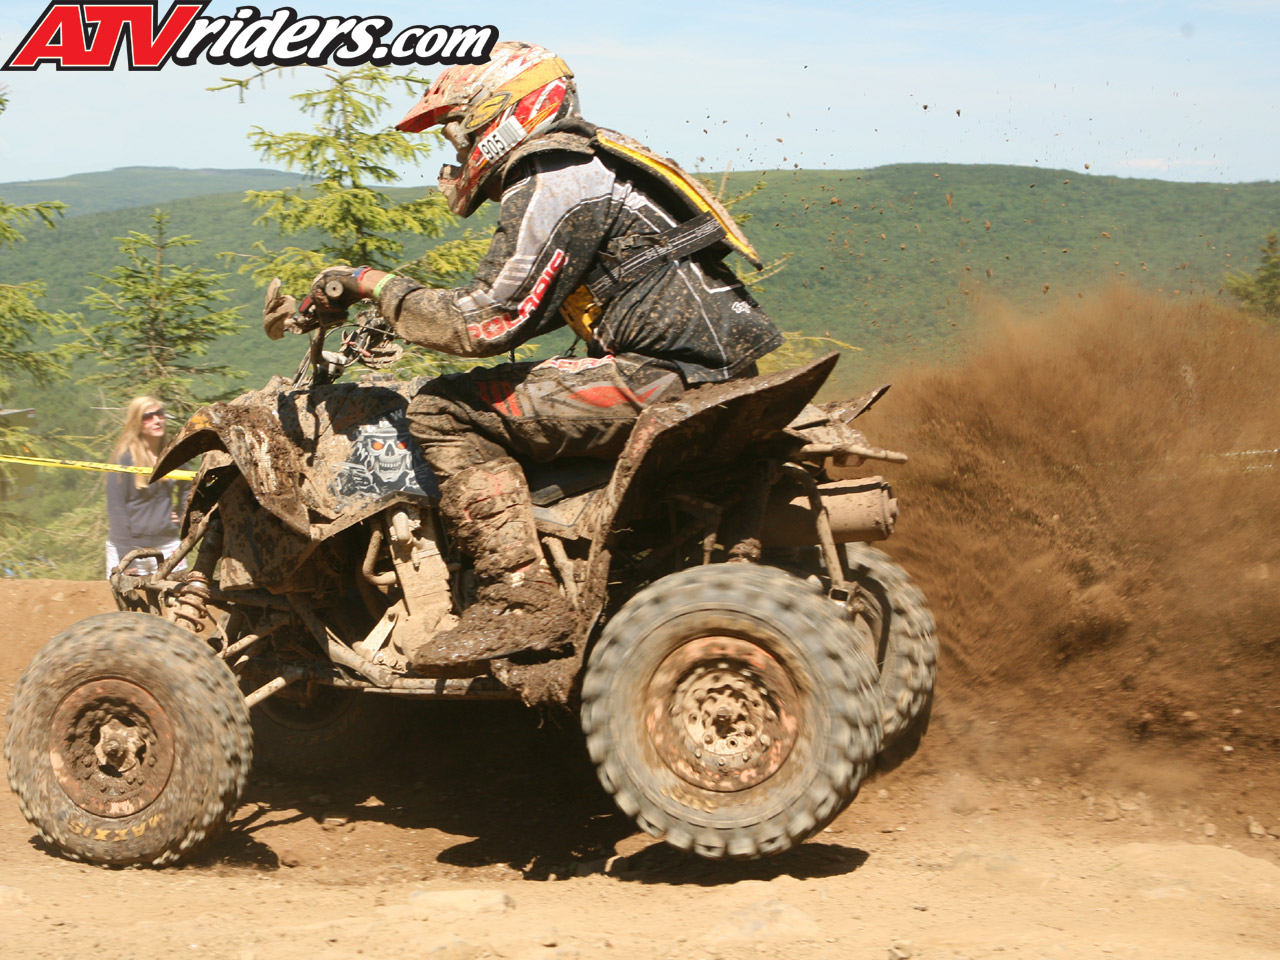 Spindle For Polaris Outlaw 525 Wiring Diagram Irs Snoeshoe Atv Race Review With Jeff 1280x960